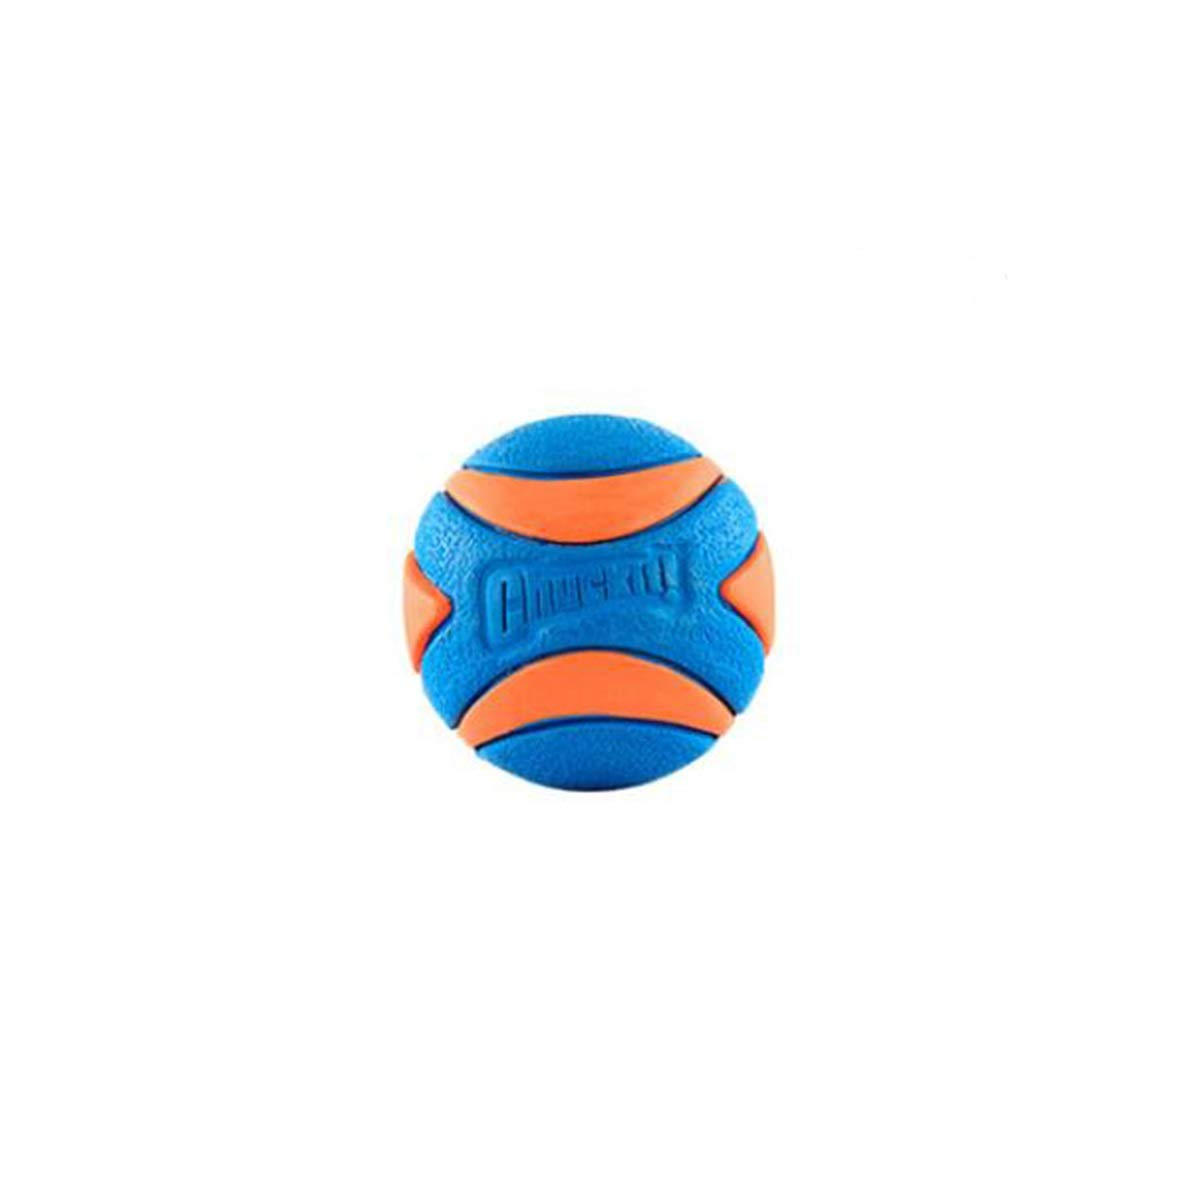 bluee M bluee M Xingganglengyin Pet Toys, pet Molar Toys, Ball Sounding Molar Toys, bluee Vocal Bouncy Balls, Natural Rubber, Three Sizes, Puppies, Large Dog Molar Toys (color   bluee, Size   M)